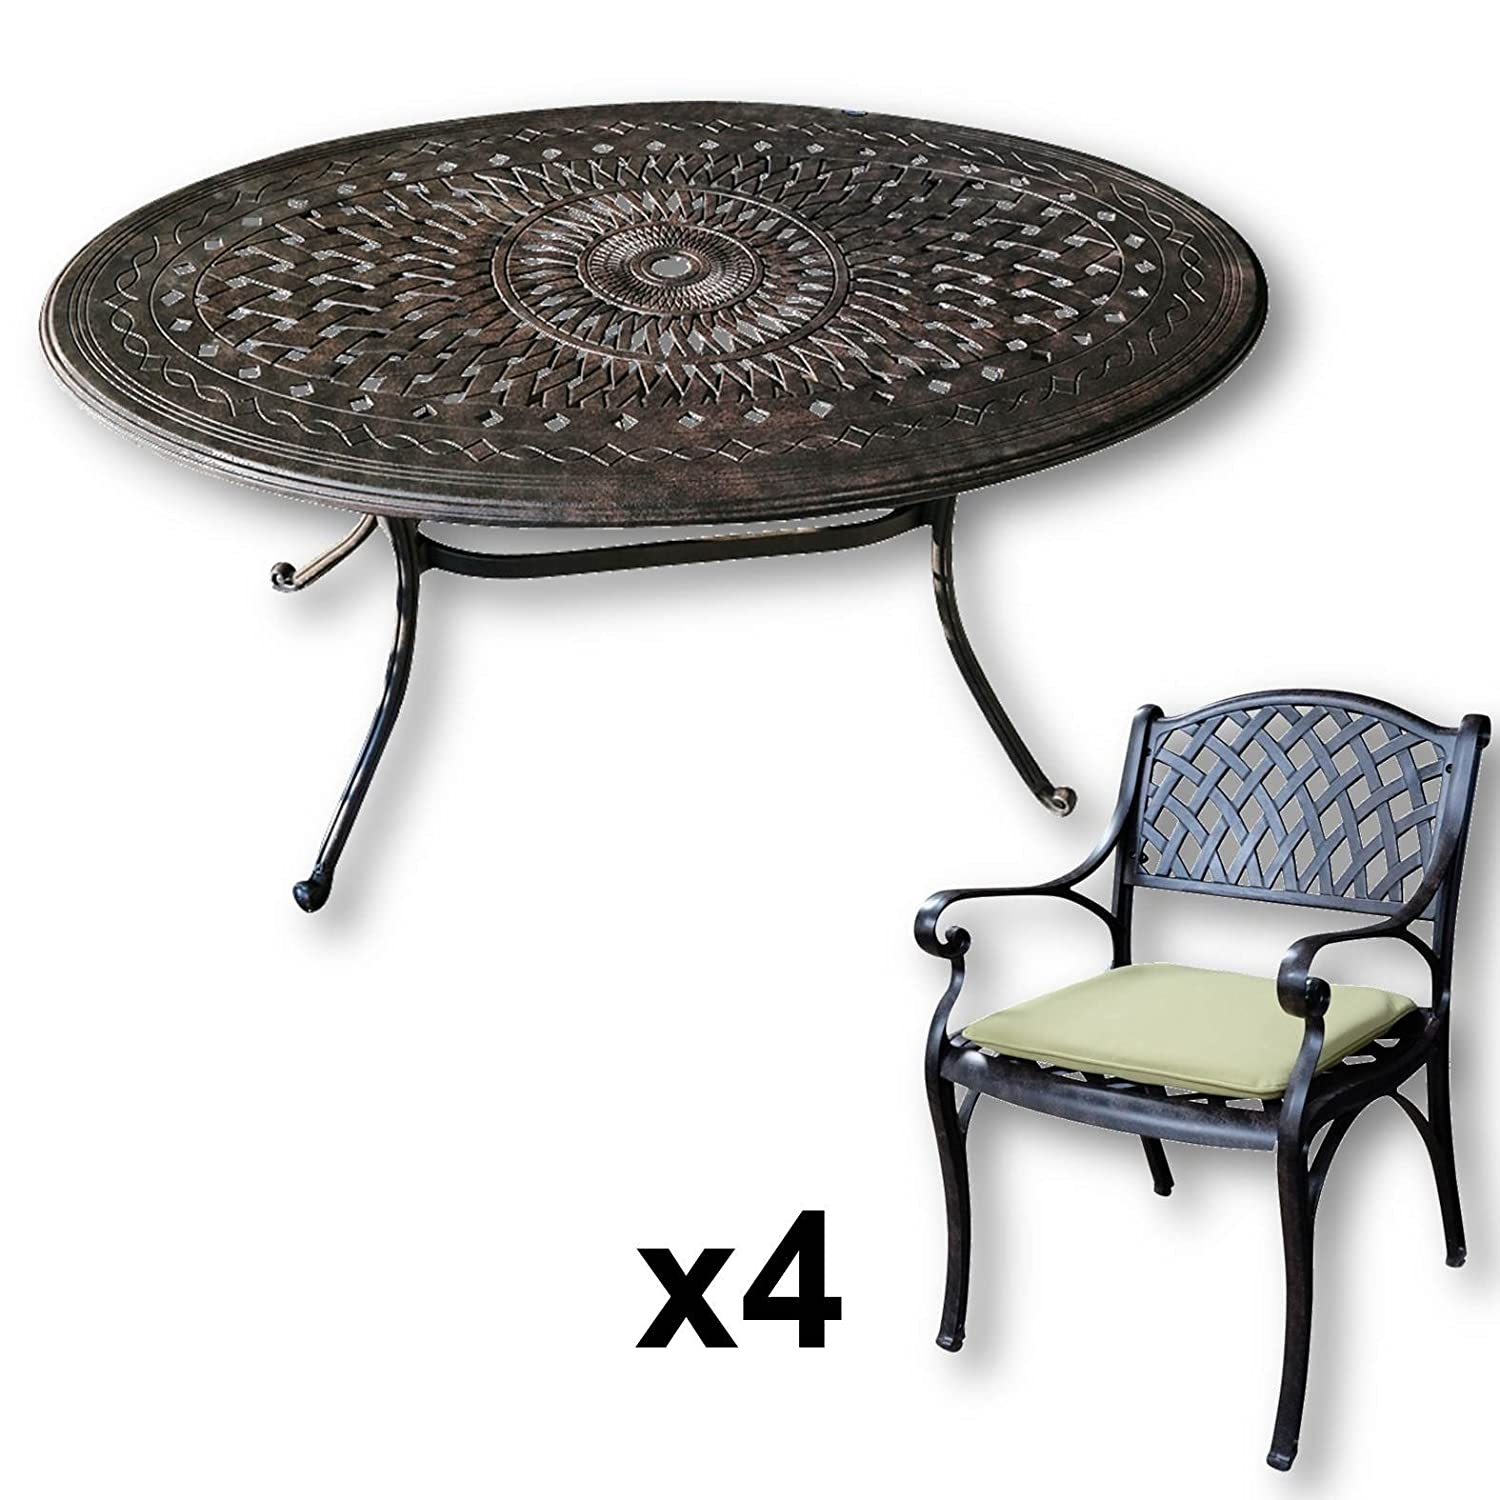 lazy susan emily 150 x 95 cm ovaler gartentisch mit 4 st hlen gartenm bel set aus metall. Black Bedroom Furniture Sets. Home Design Ideas